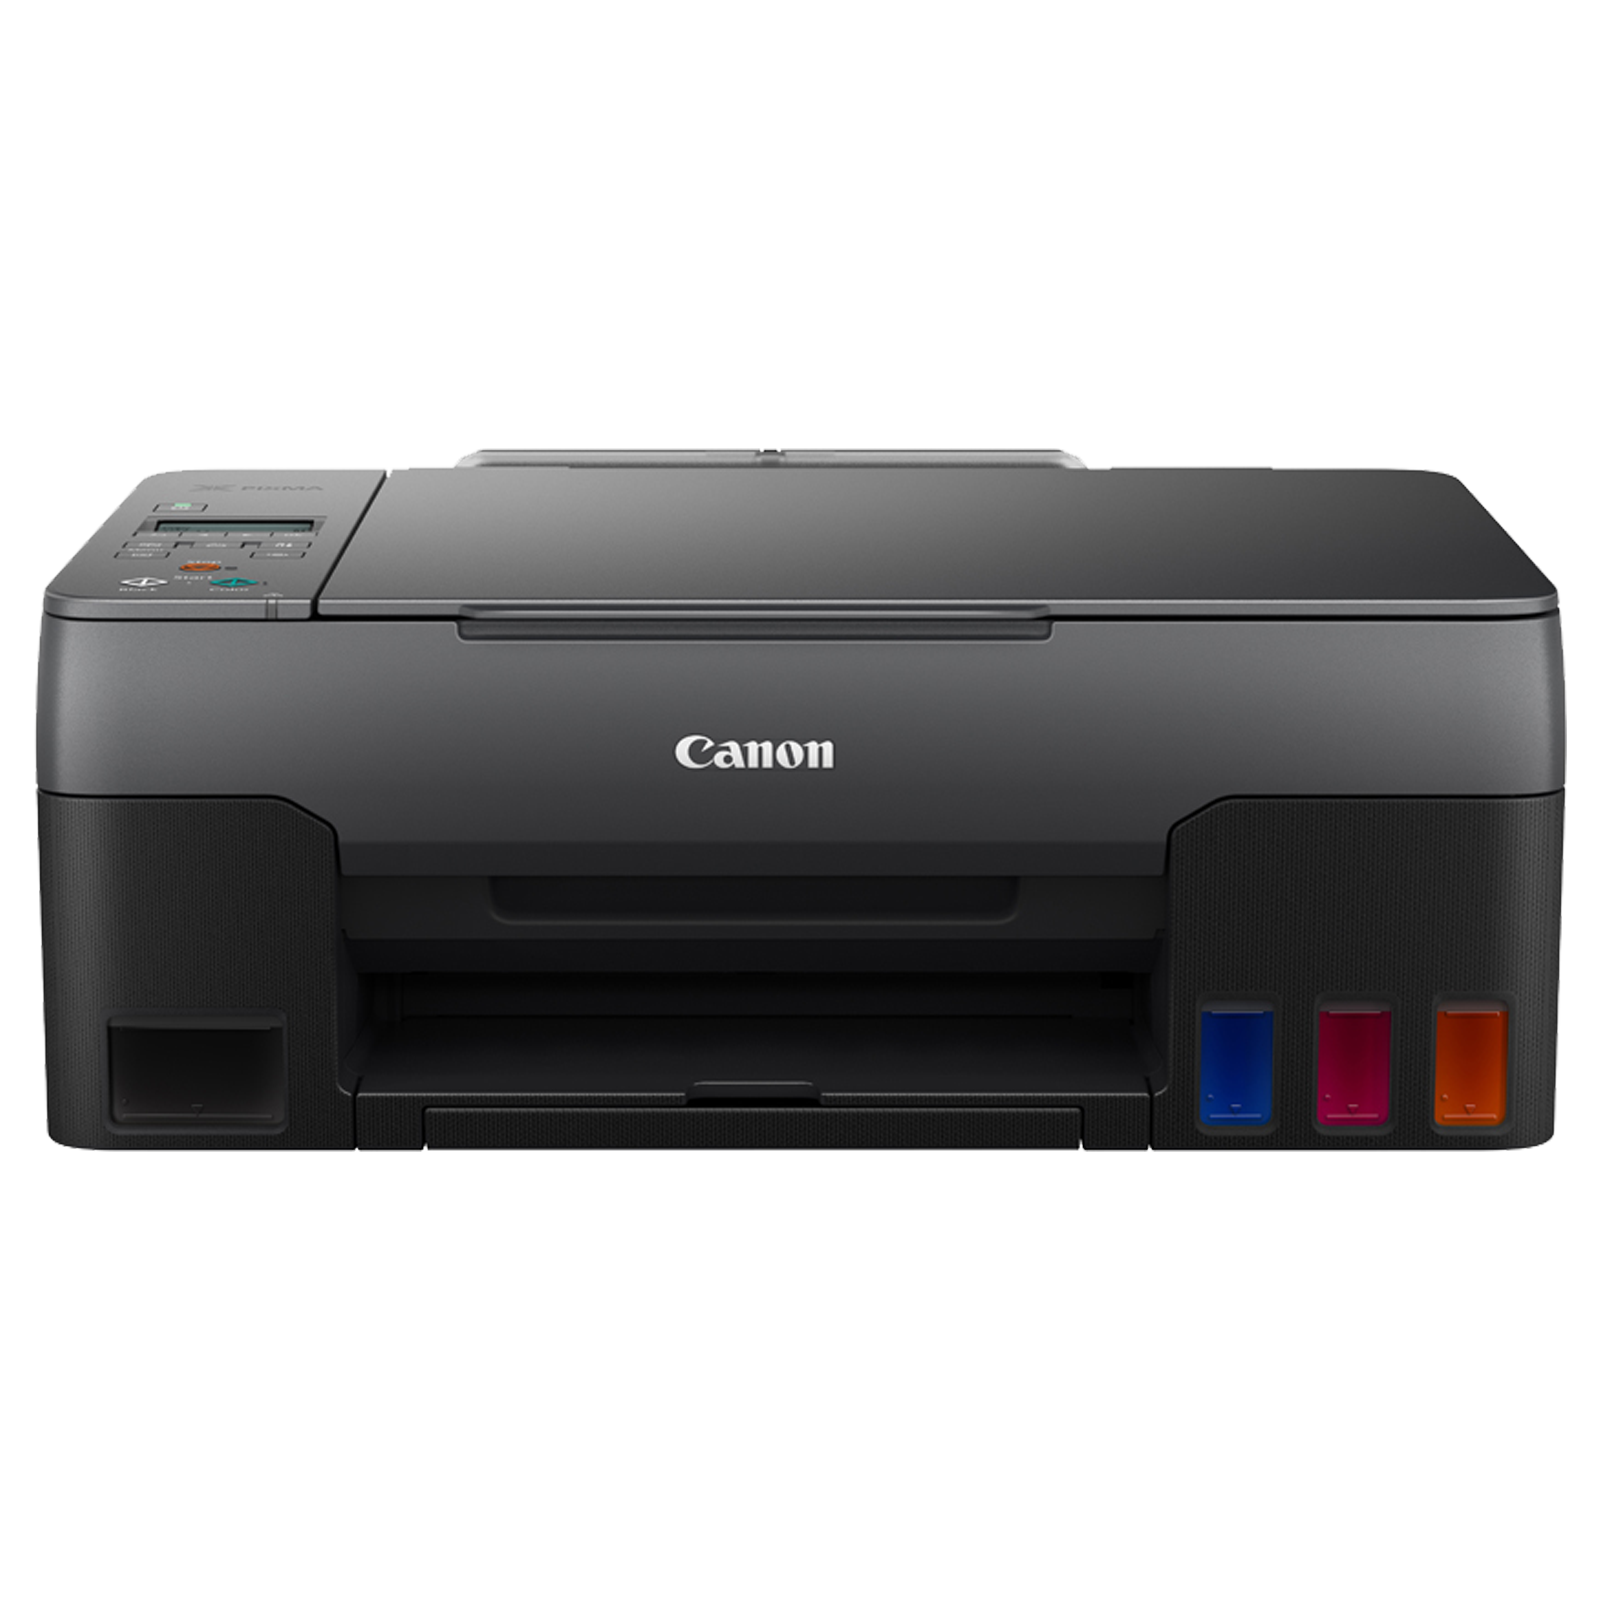 Canon Pixma Wireless Color All-in-One Ink Tank Printer (Borderless Printing, G3020, Black)_1